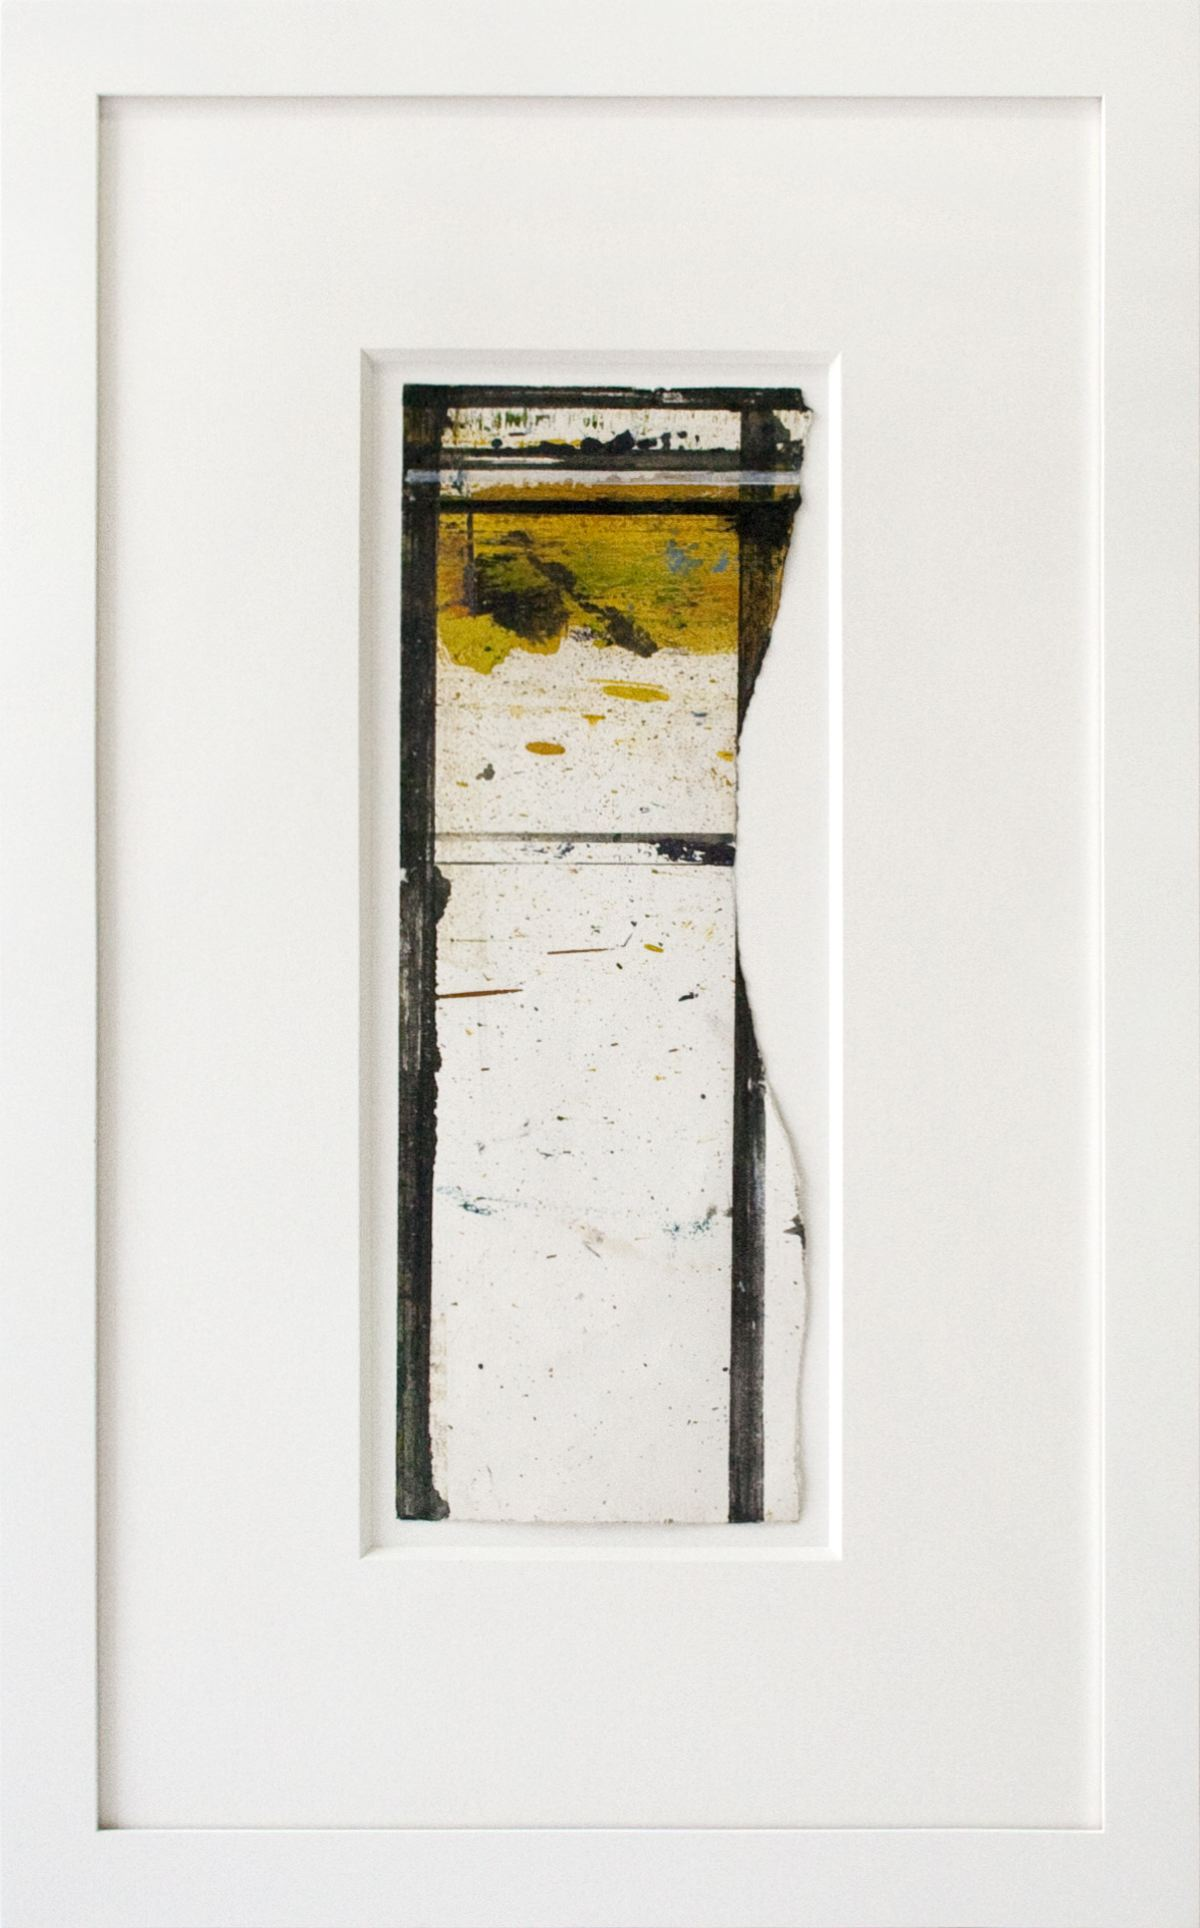 Brice Marden Untitled (Masking Drawing) 1984 oil and ink on paper 14 5/8 x 5 3/8 inches